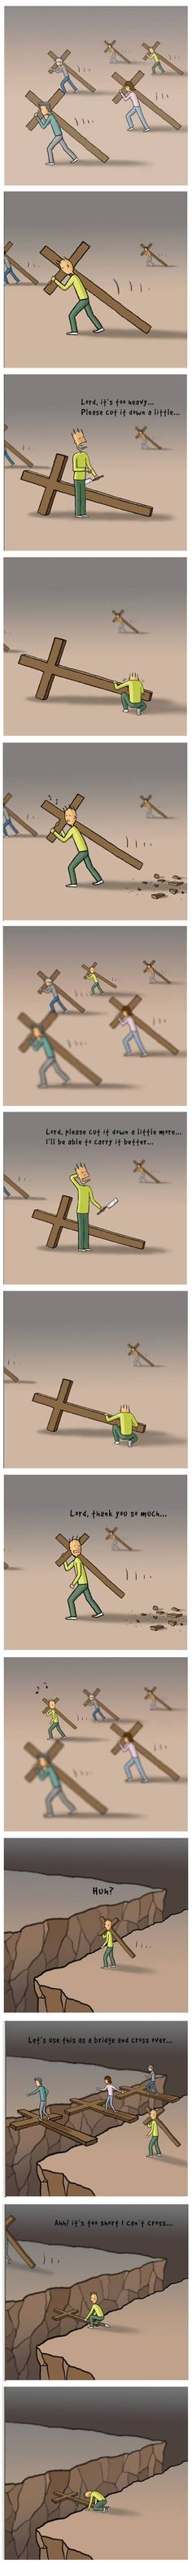 sometimes we complain about the cross we bear not realizing that it's preparing us for the dip in the road that God can see and we cannot…http://ibibleverses.christianpost.com/?p=95518 #comicstrips #cartoon #cross